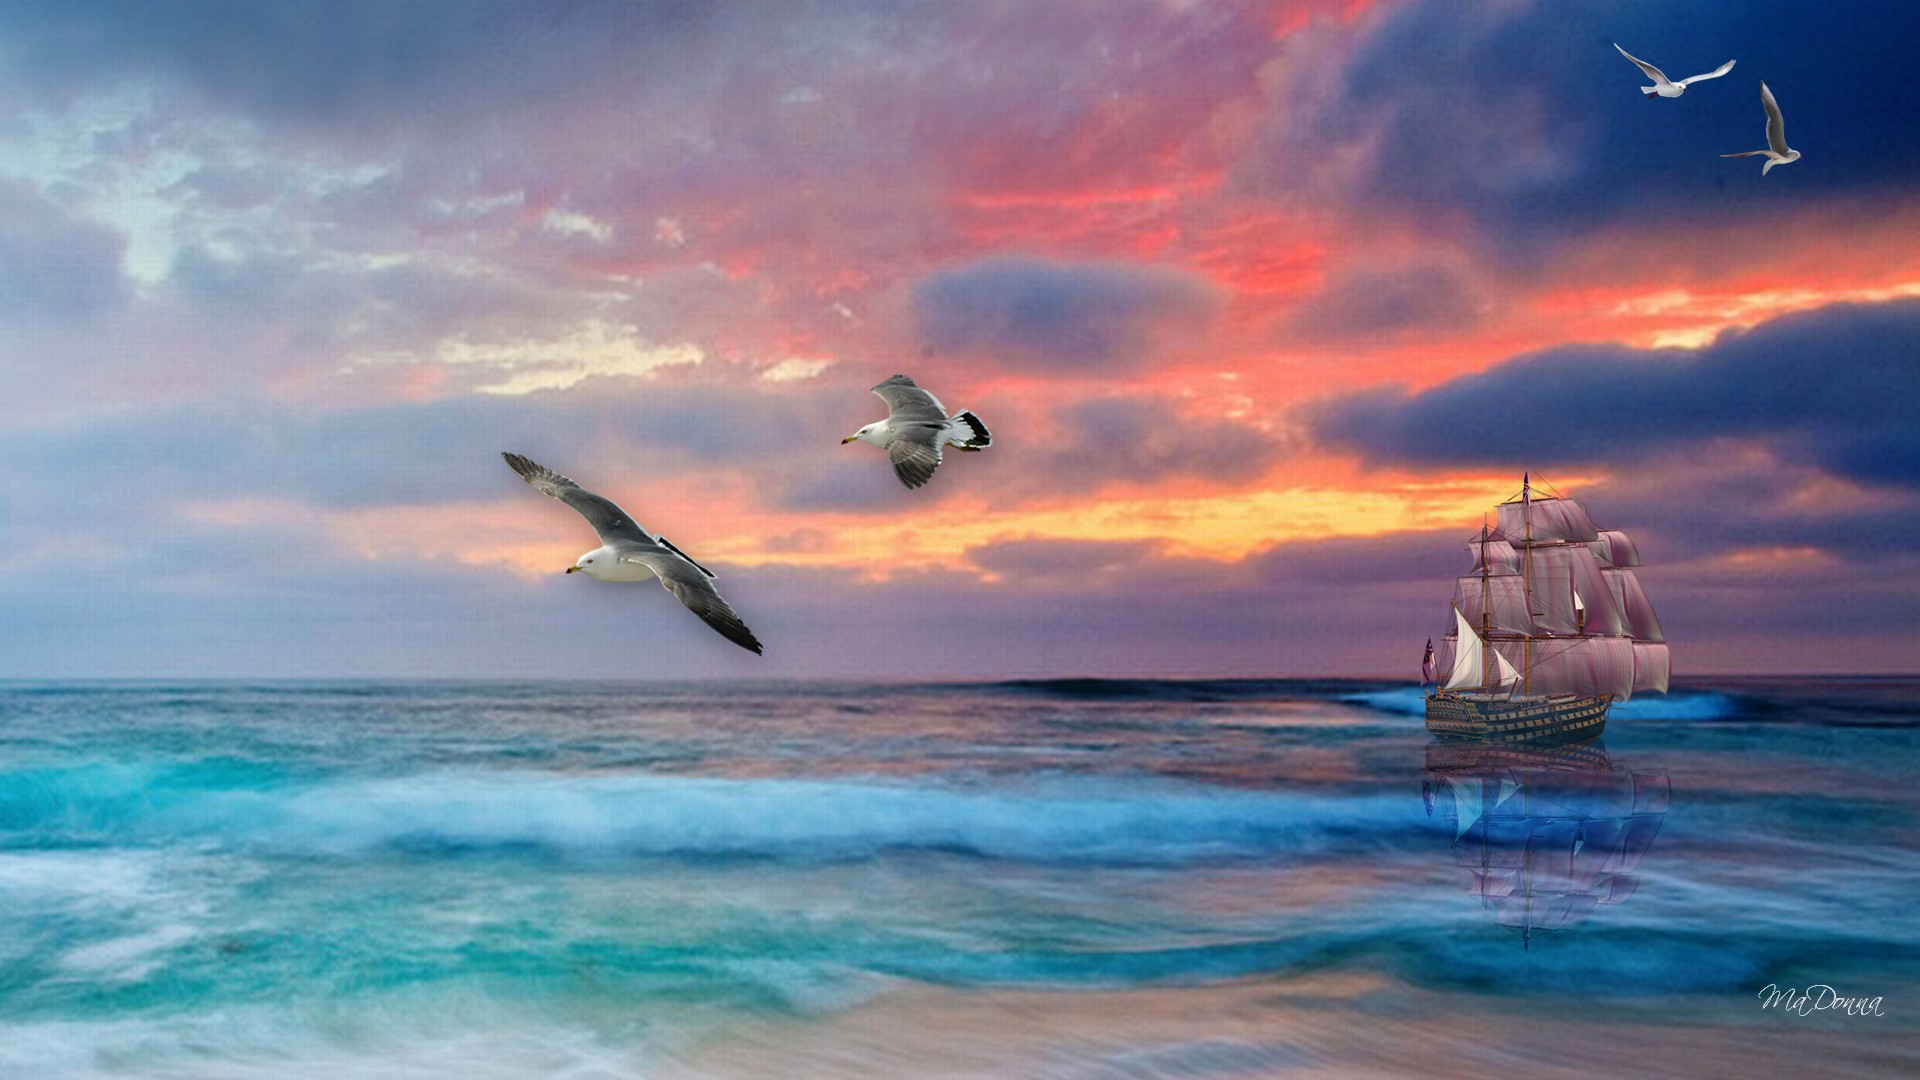 Sail Boat Sailing Sea Sunset Hd Tall Ship 289151 19201080 1920x1080